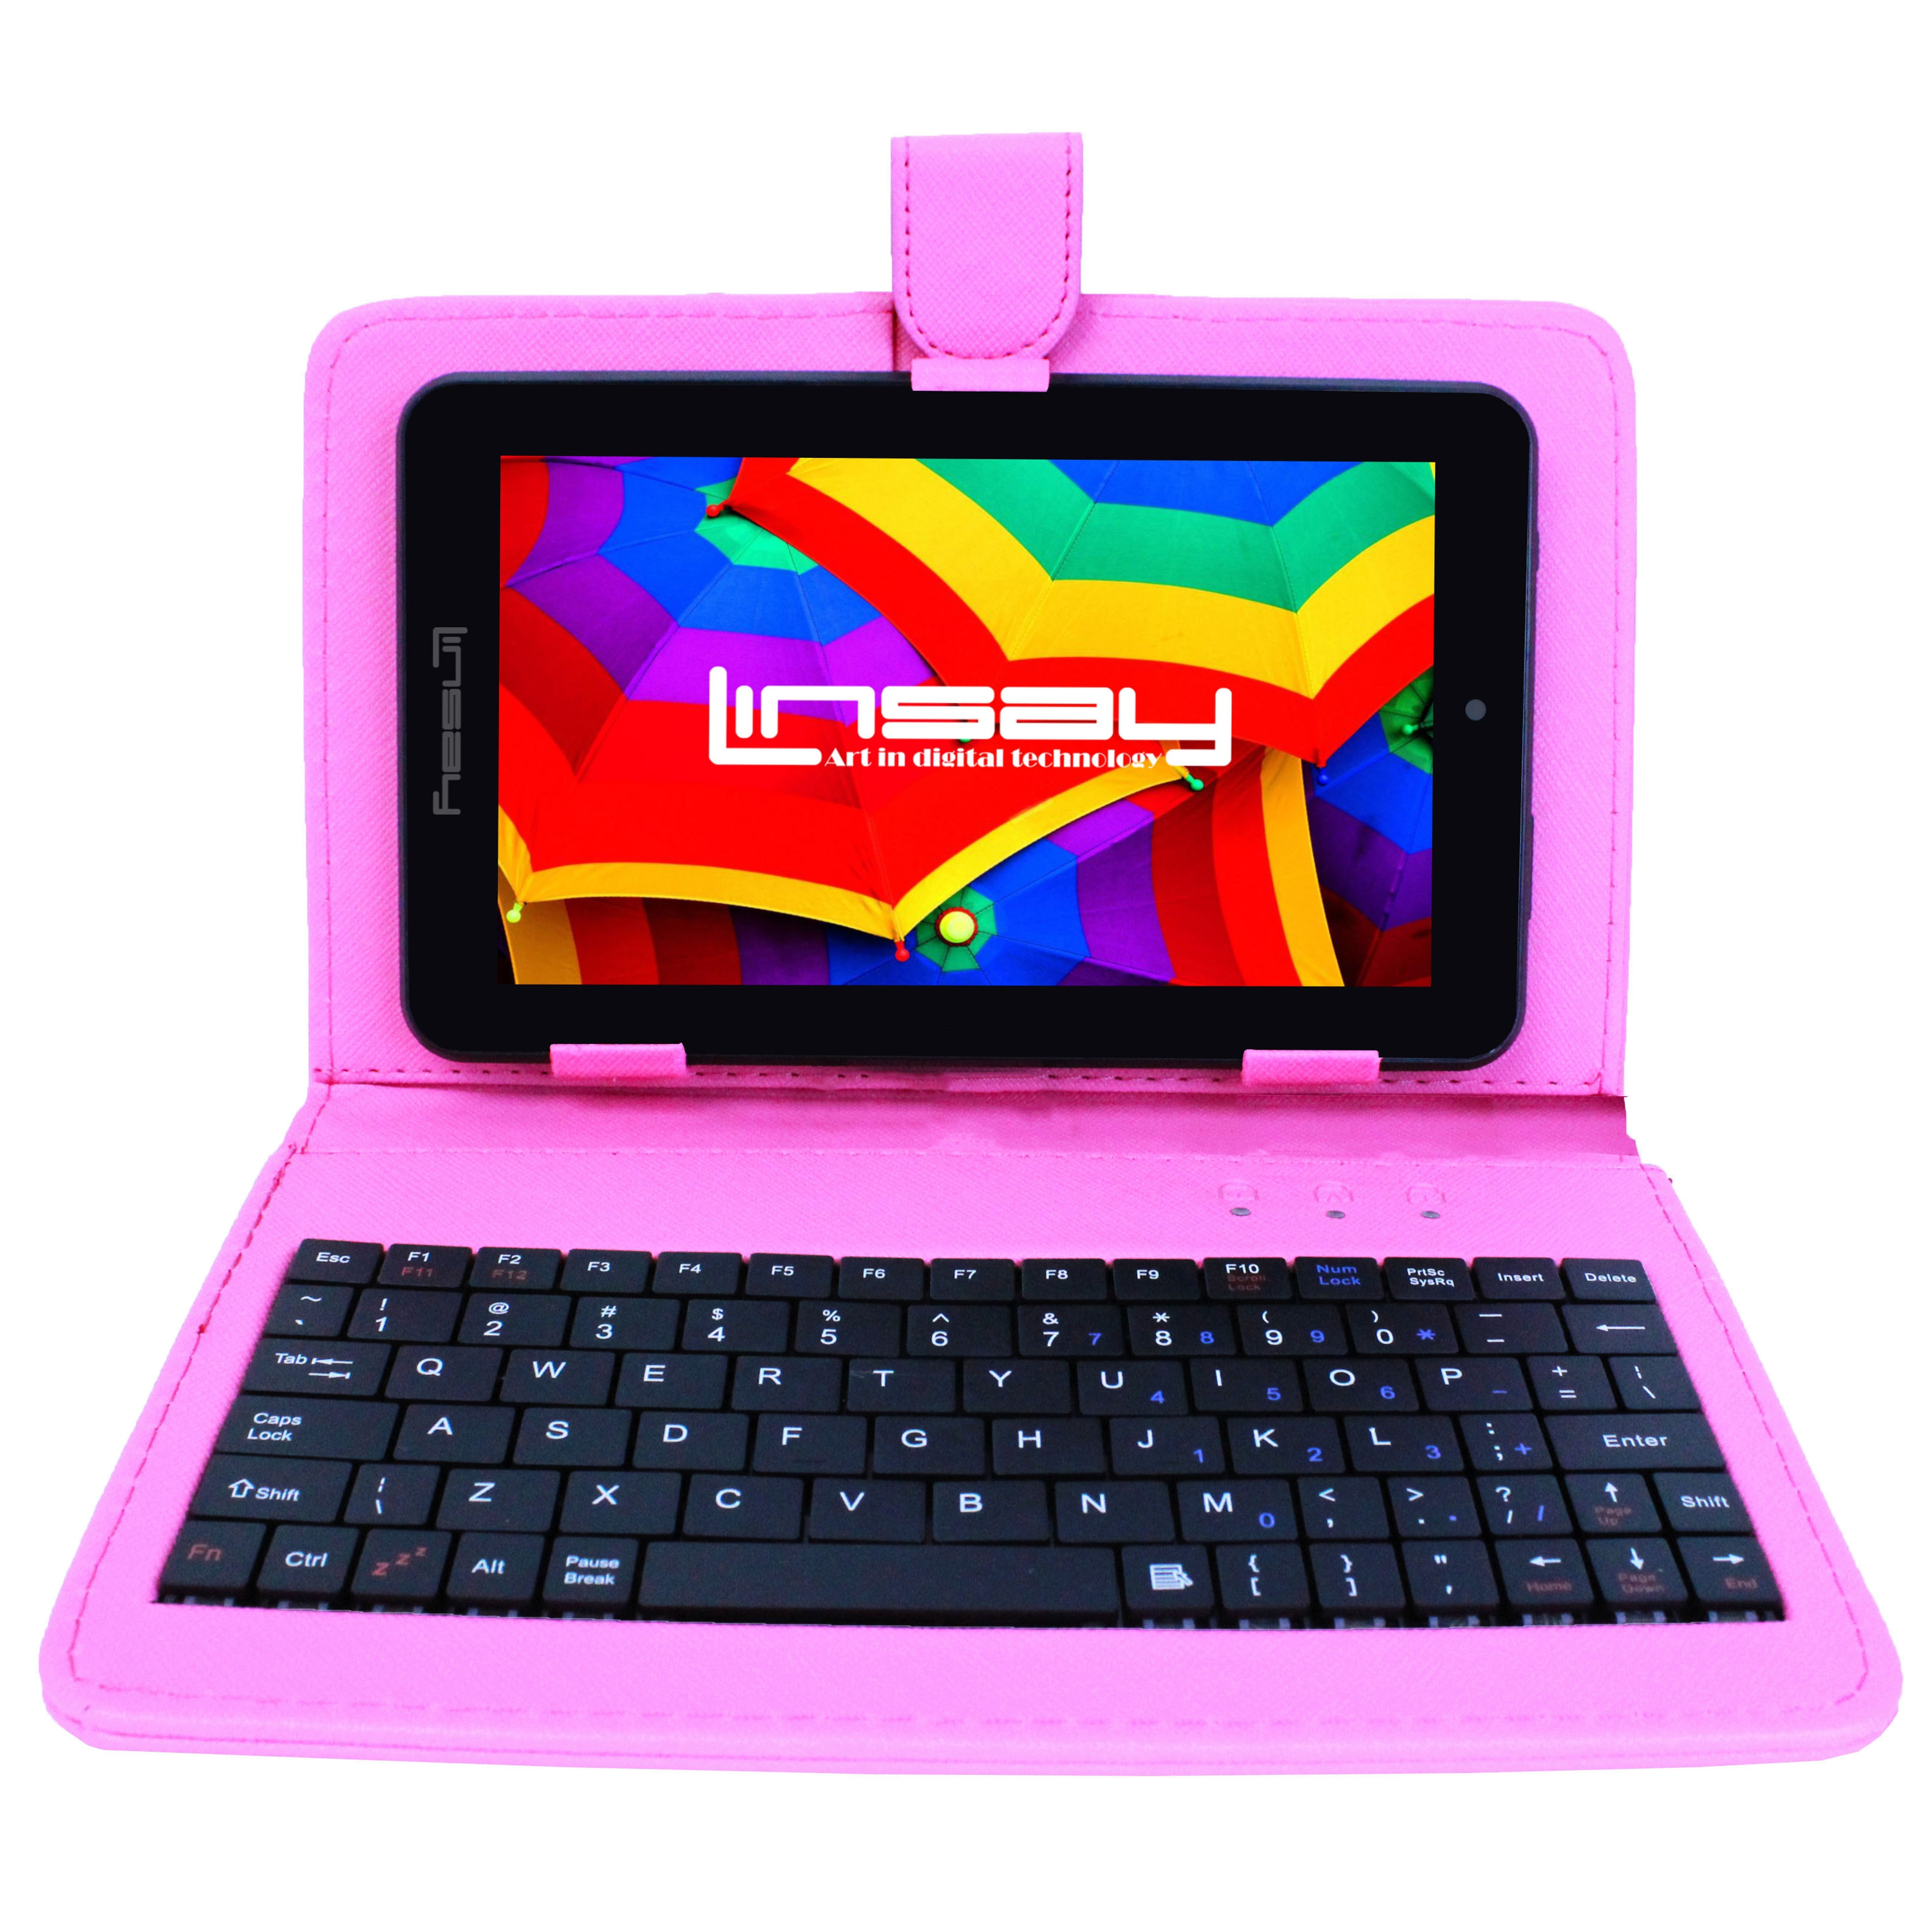 LINSAY 7 1280x800 IPS Touchscreen Tablet PC Featuring Android 4.4 (KitKat) Operating System Bundle with Pink Keyboard